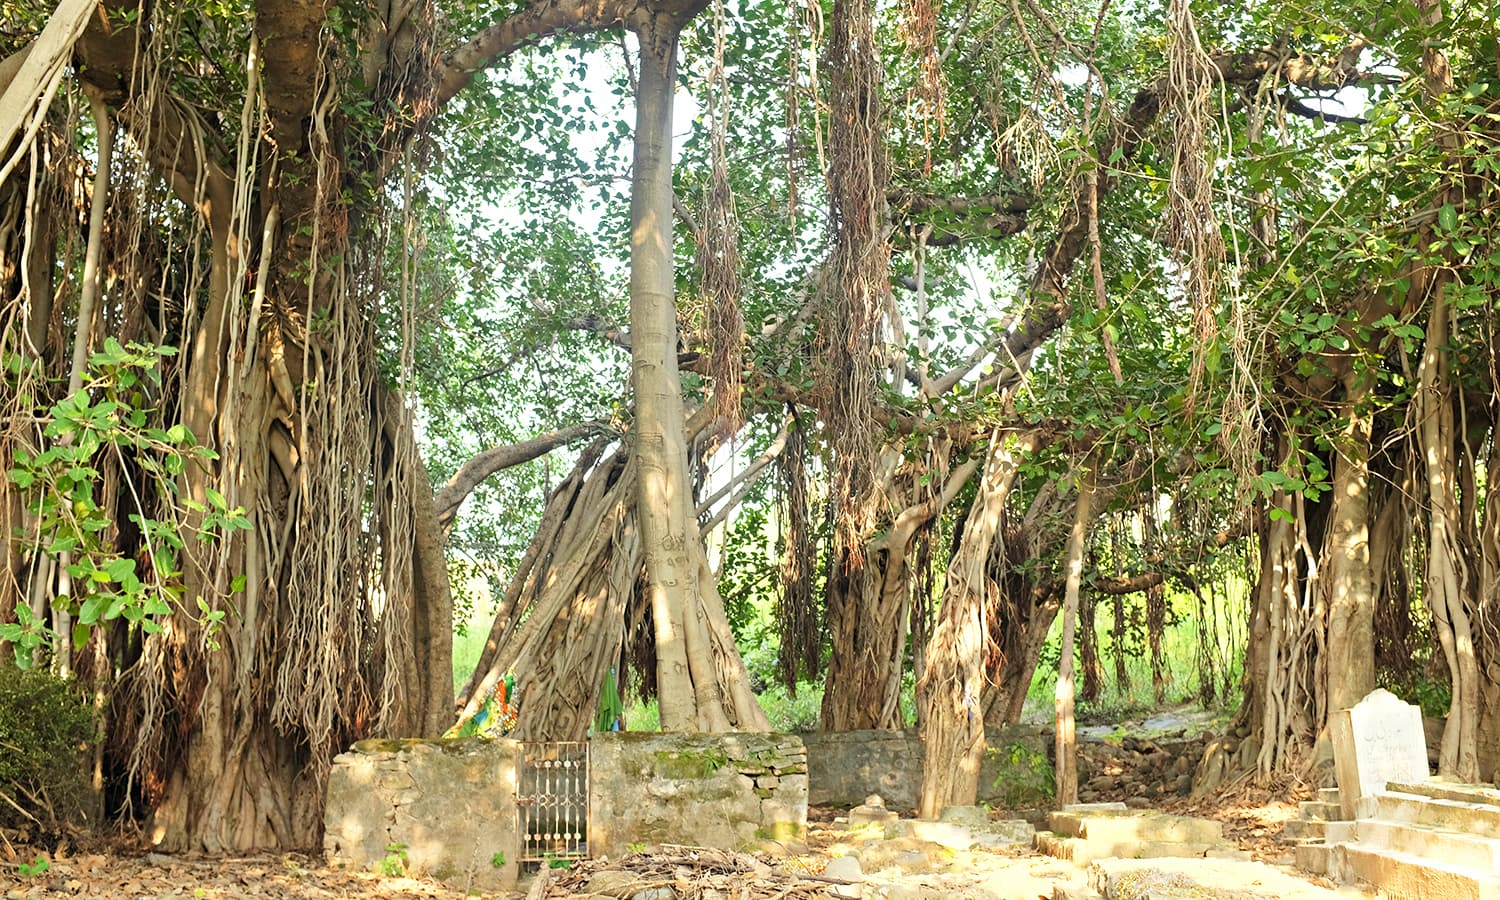 The Bohri gate takes its name from the beautiful banyan tree